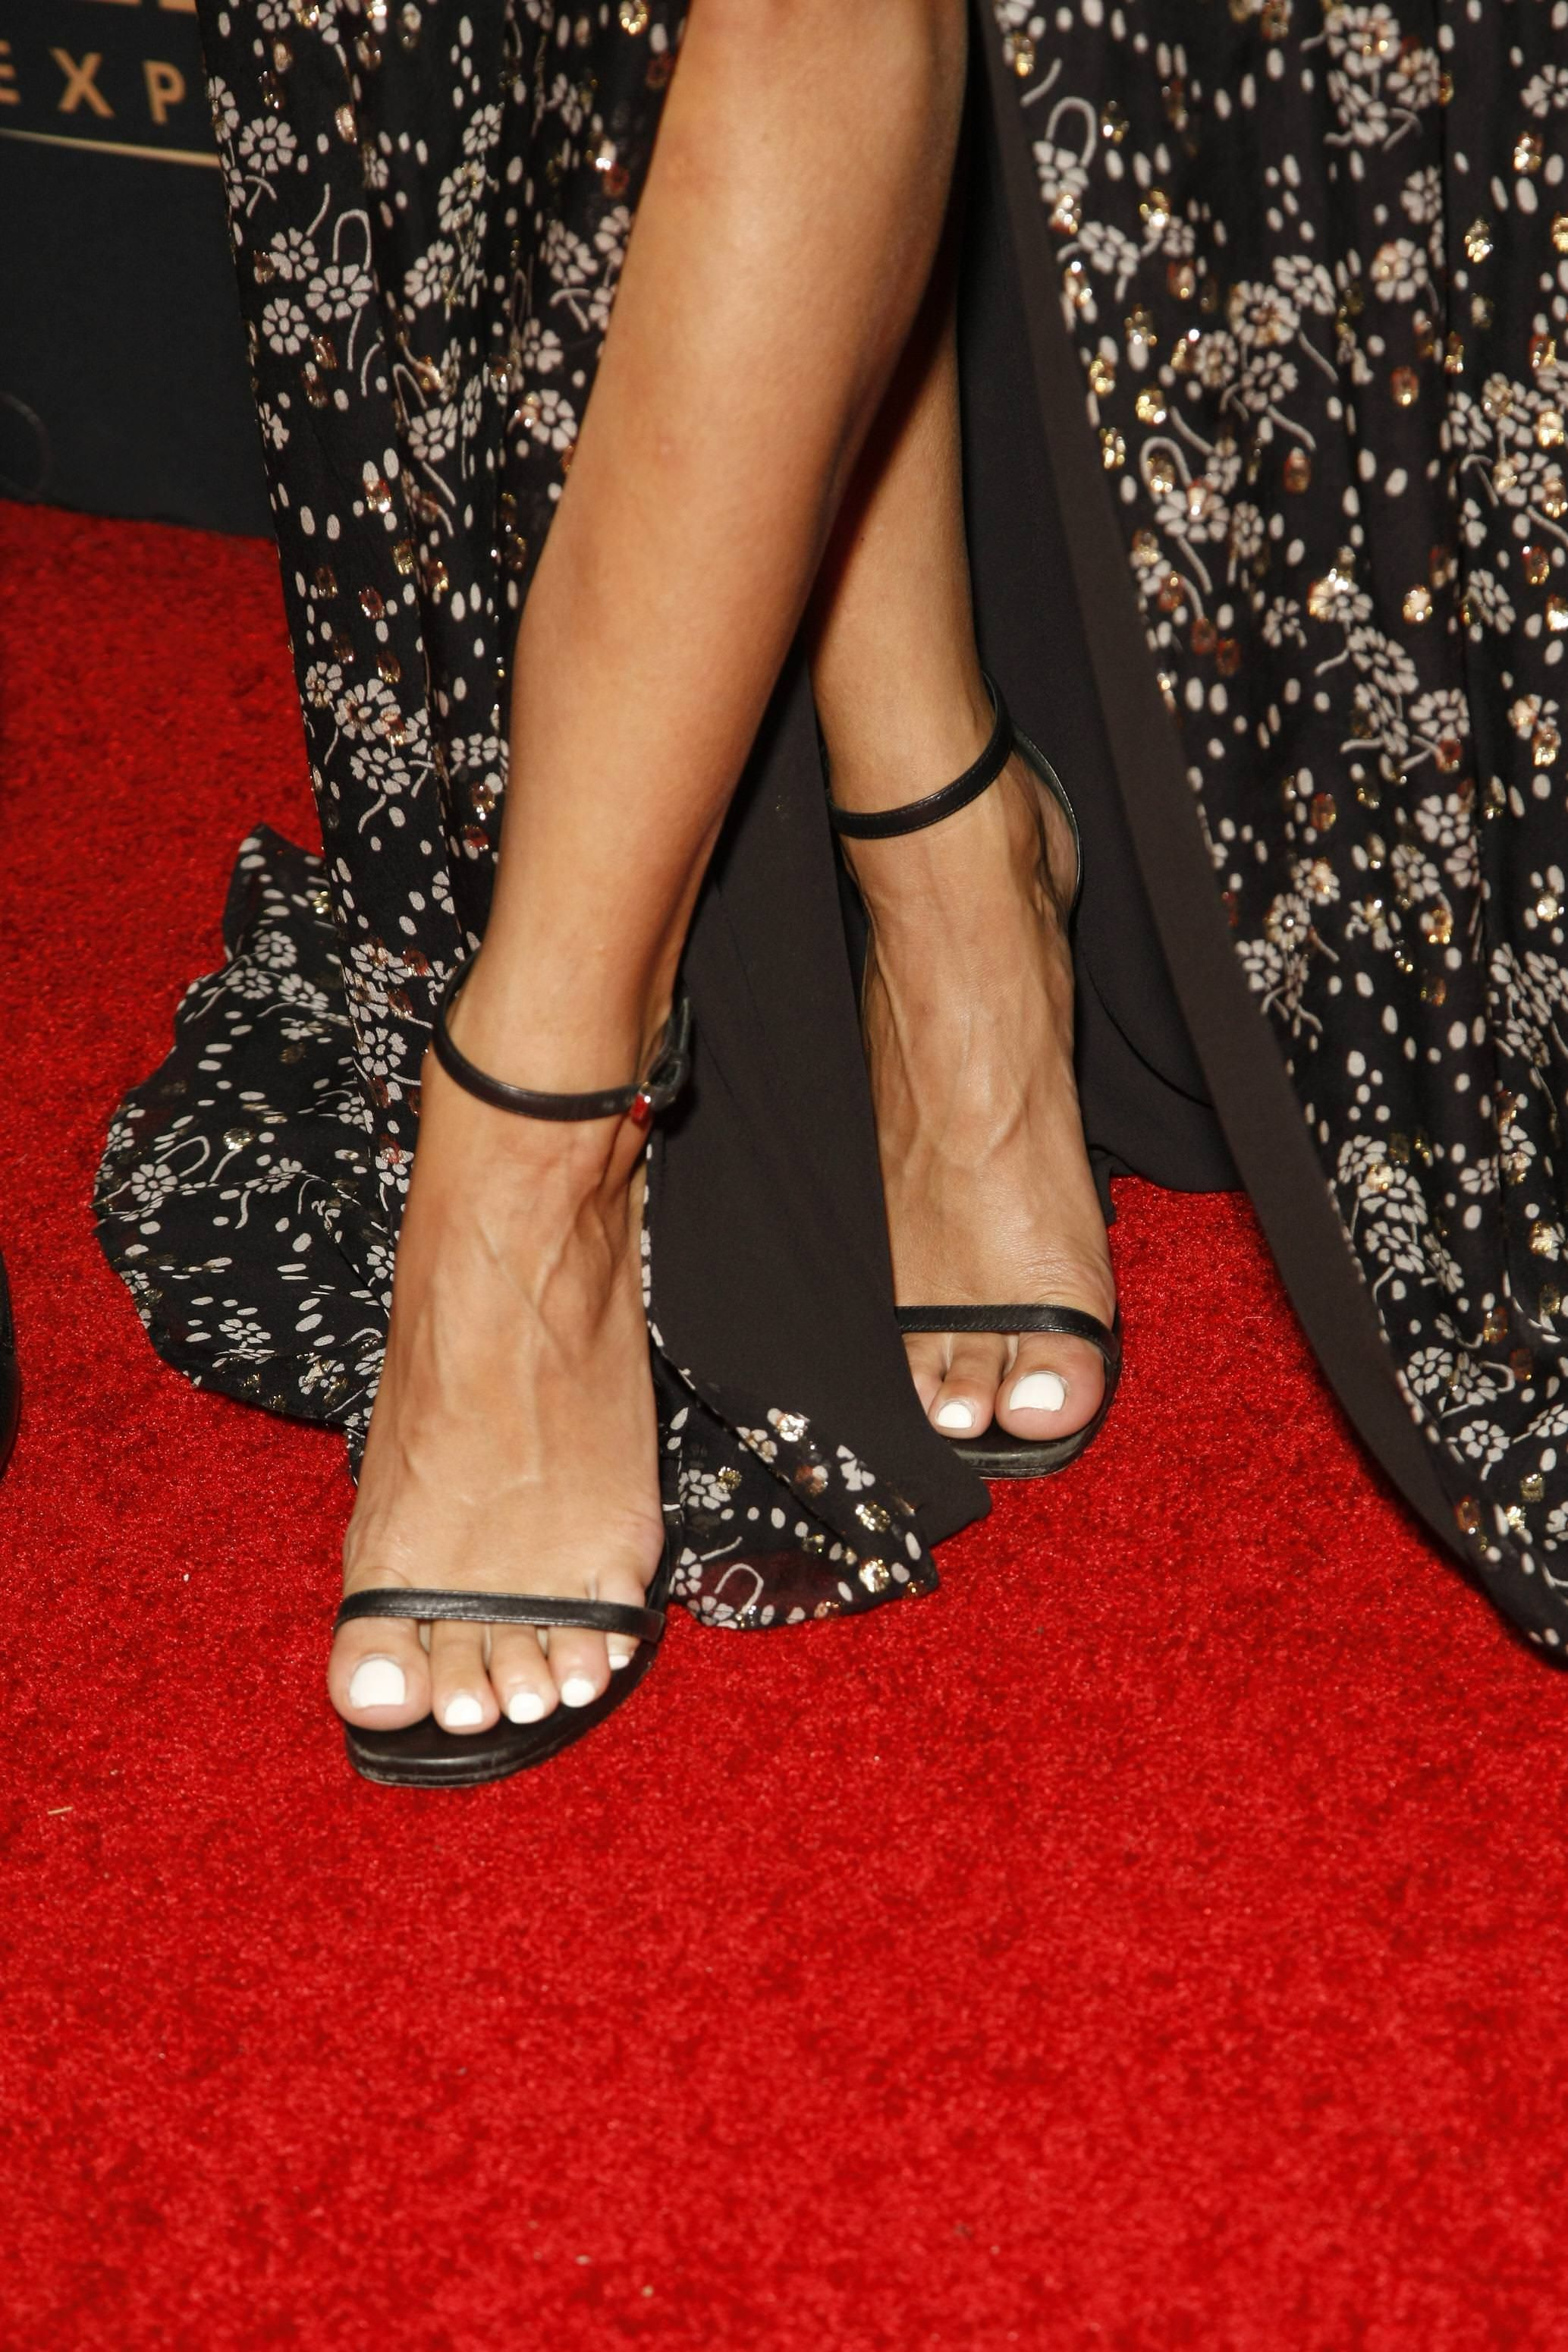 Apologise, but, Vanessa hudgens toes